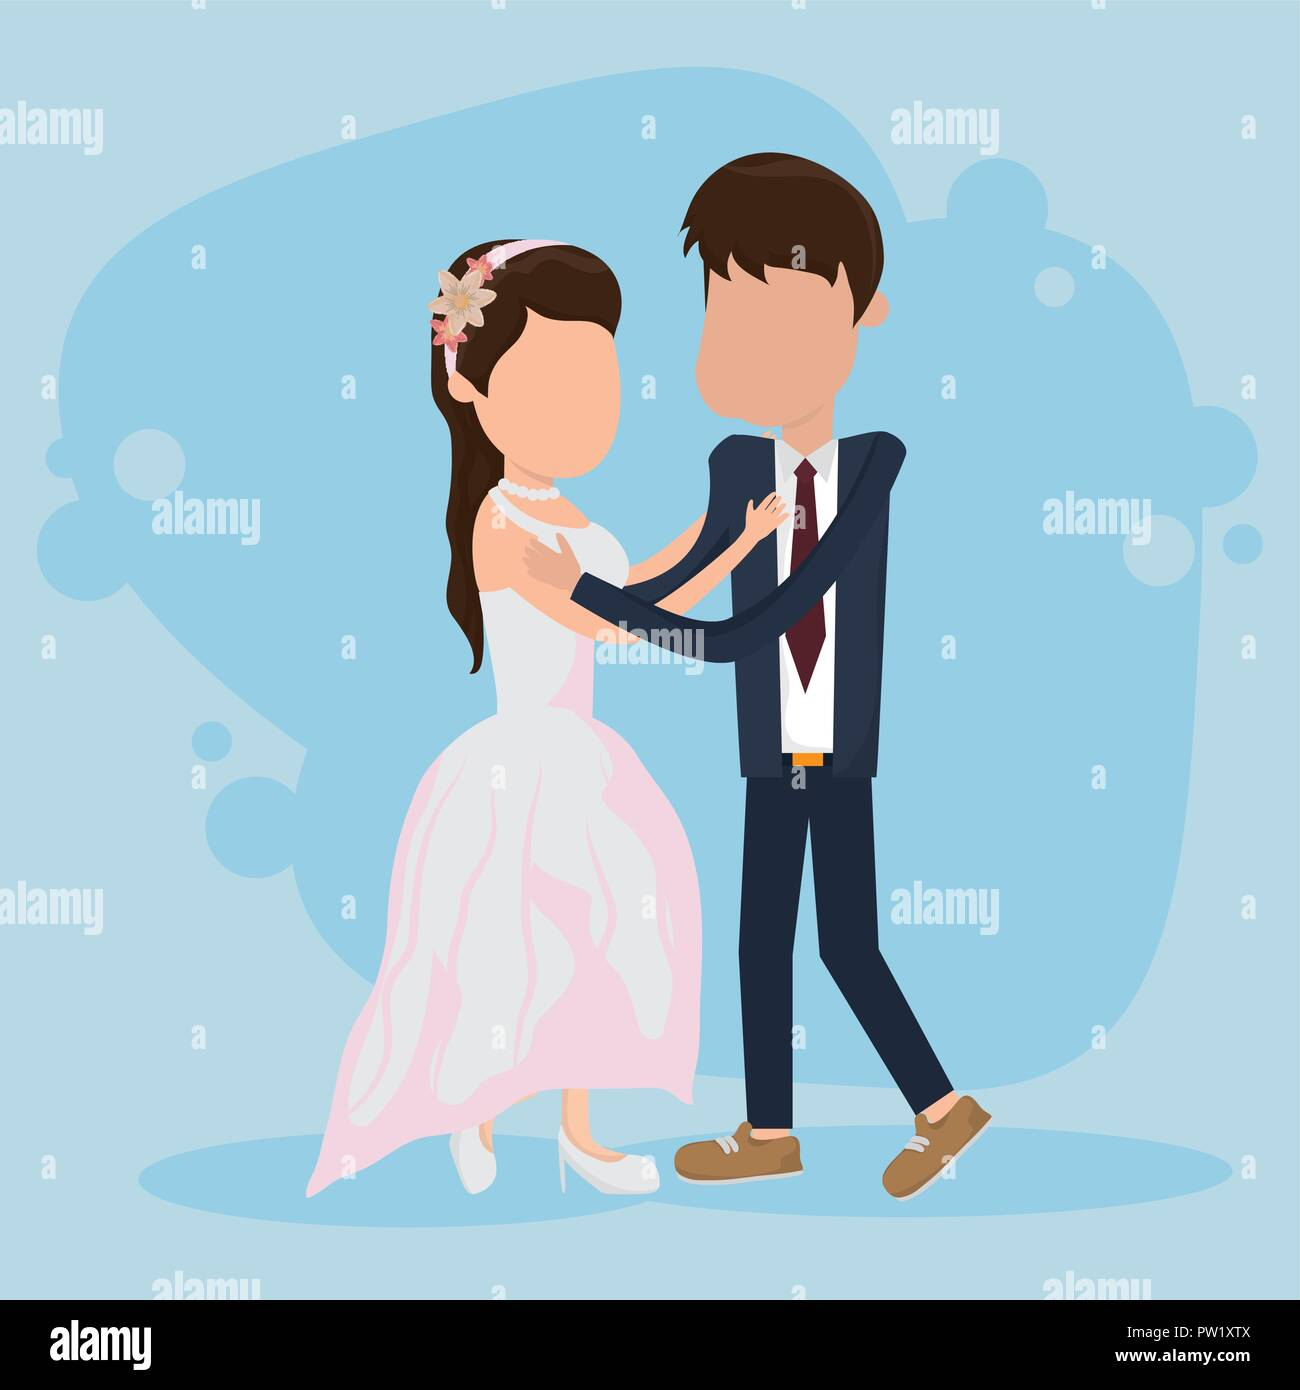 Wedding Just Married Card With Cute Couple Cartoon Stock Vector